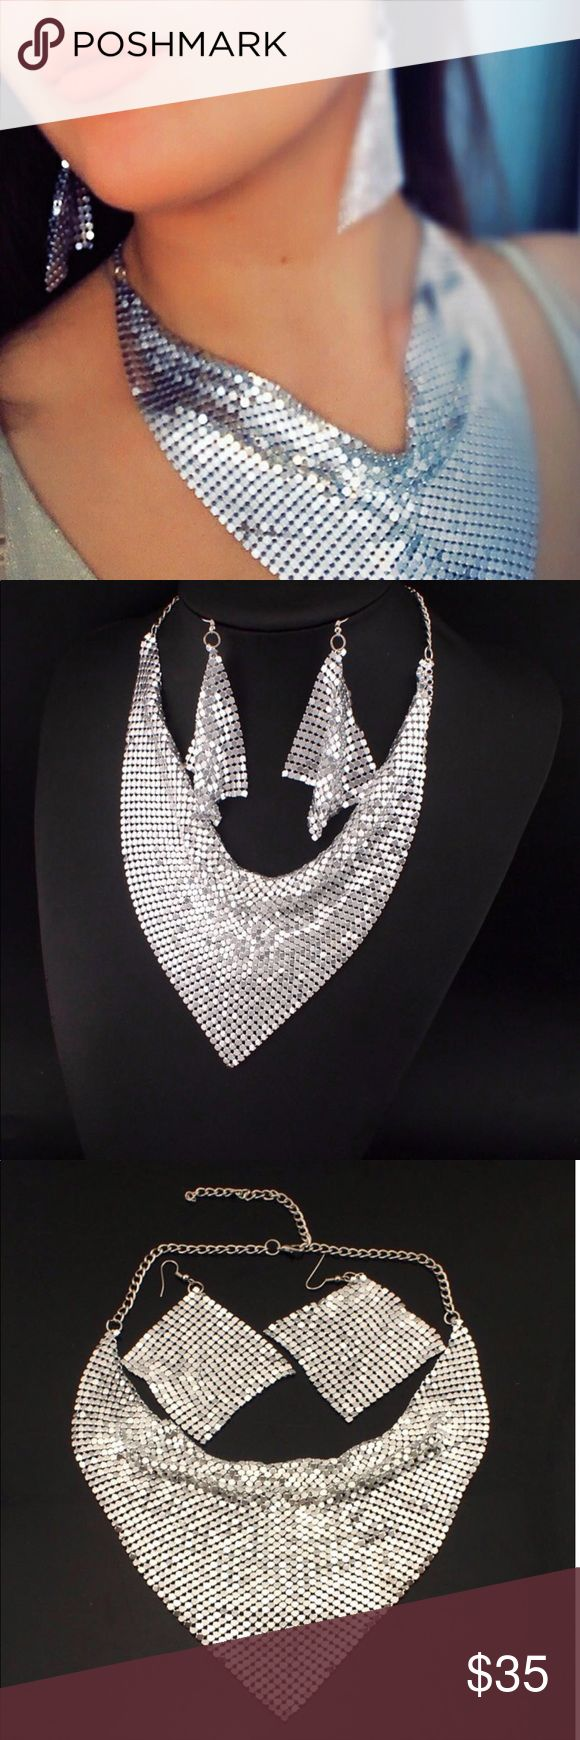 Silver Mesh Bib Necklace And Earrings A set of earrings and necklace. Silver mesh. Necklace perimeter approx 54 cm with 7 cm. Bib triangle approx 13 cm. ❤️❤️❤️❤️❤️❤️❤️❤️❤️❤️❤️❤️❤️❤️❤️❤️❤️❤️❤️❤️jewelry set, necklace and earrings set, silver mesh set, Jewelry